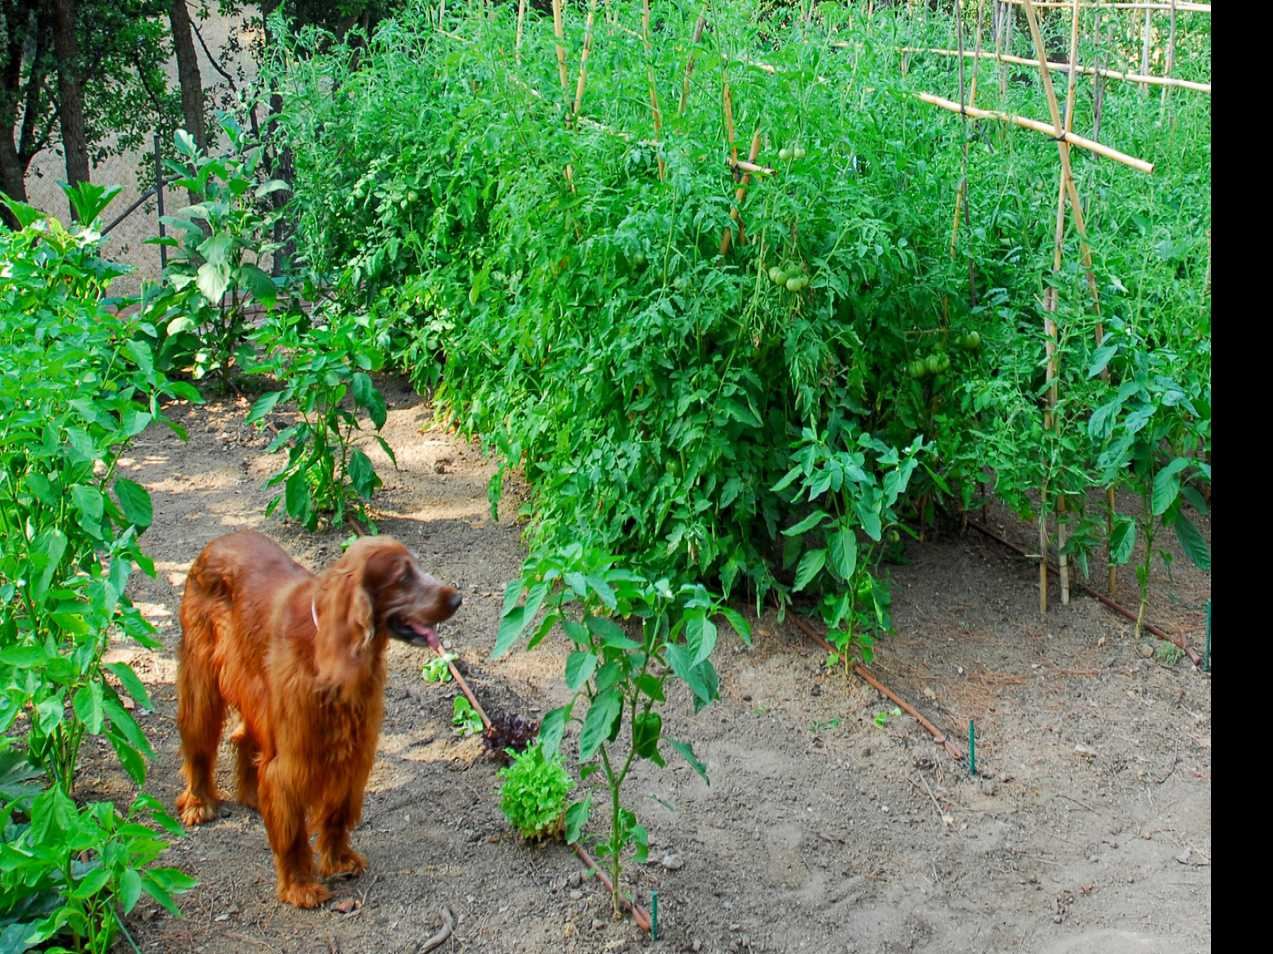 Keep Pets Away From Gardens to Avoid Food-Borne Illness